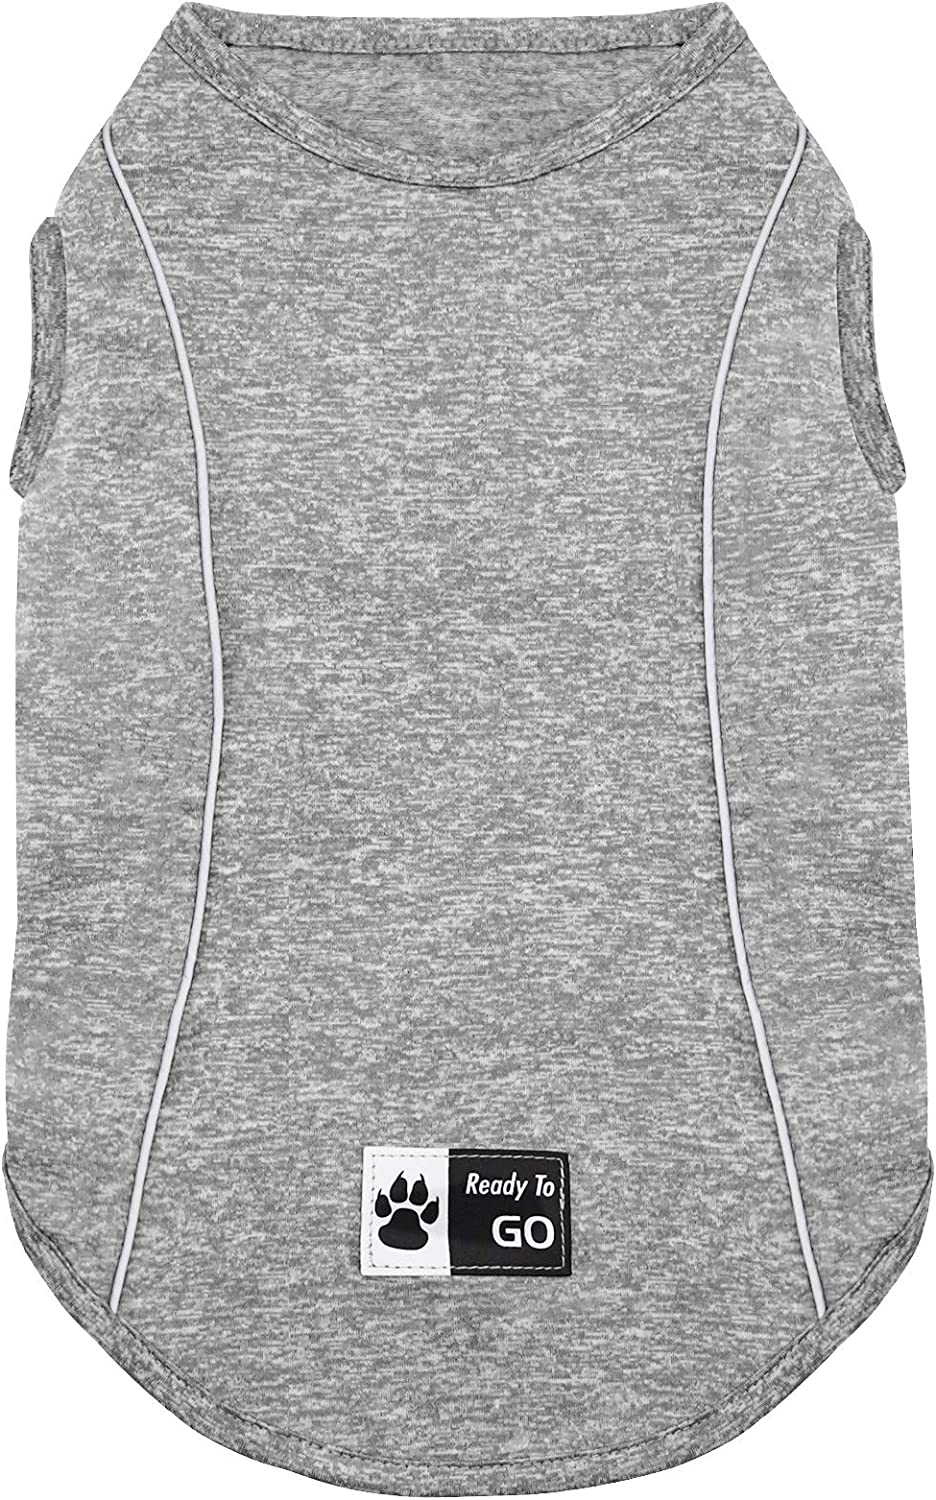 KYEESE Dog Shirts Quick Dry Reflective Lightweight Soft Dog T-Shirt Tank Top Breathable Sleeveless Vest Dog Apparel : Pet Supplies